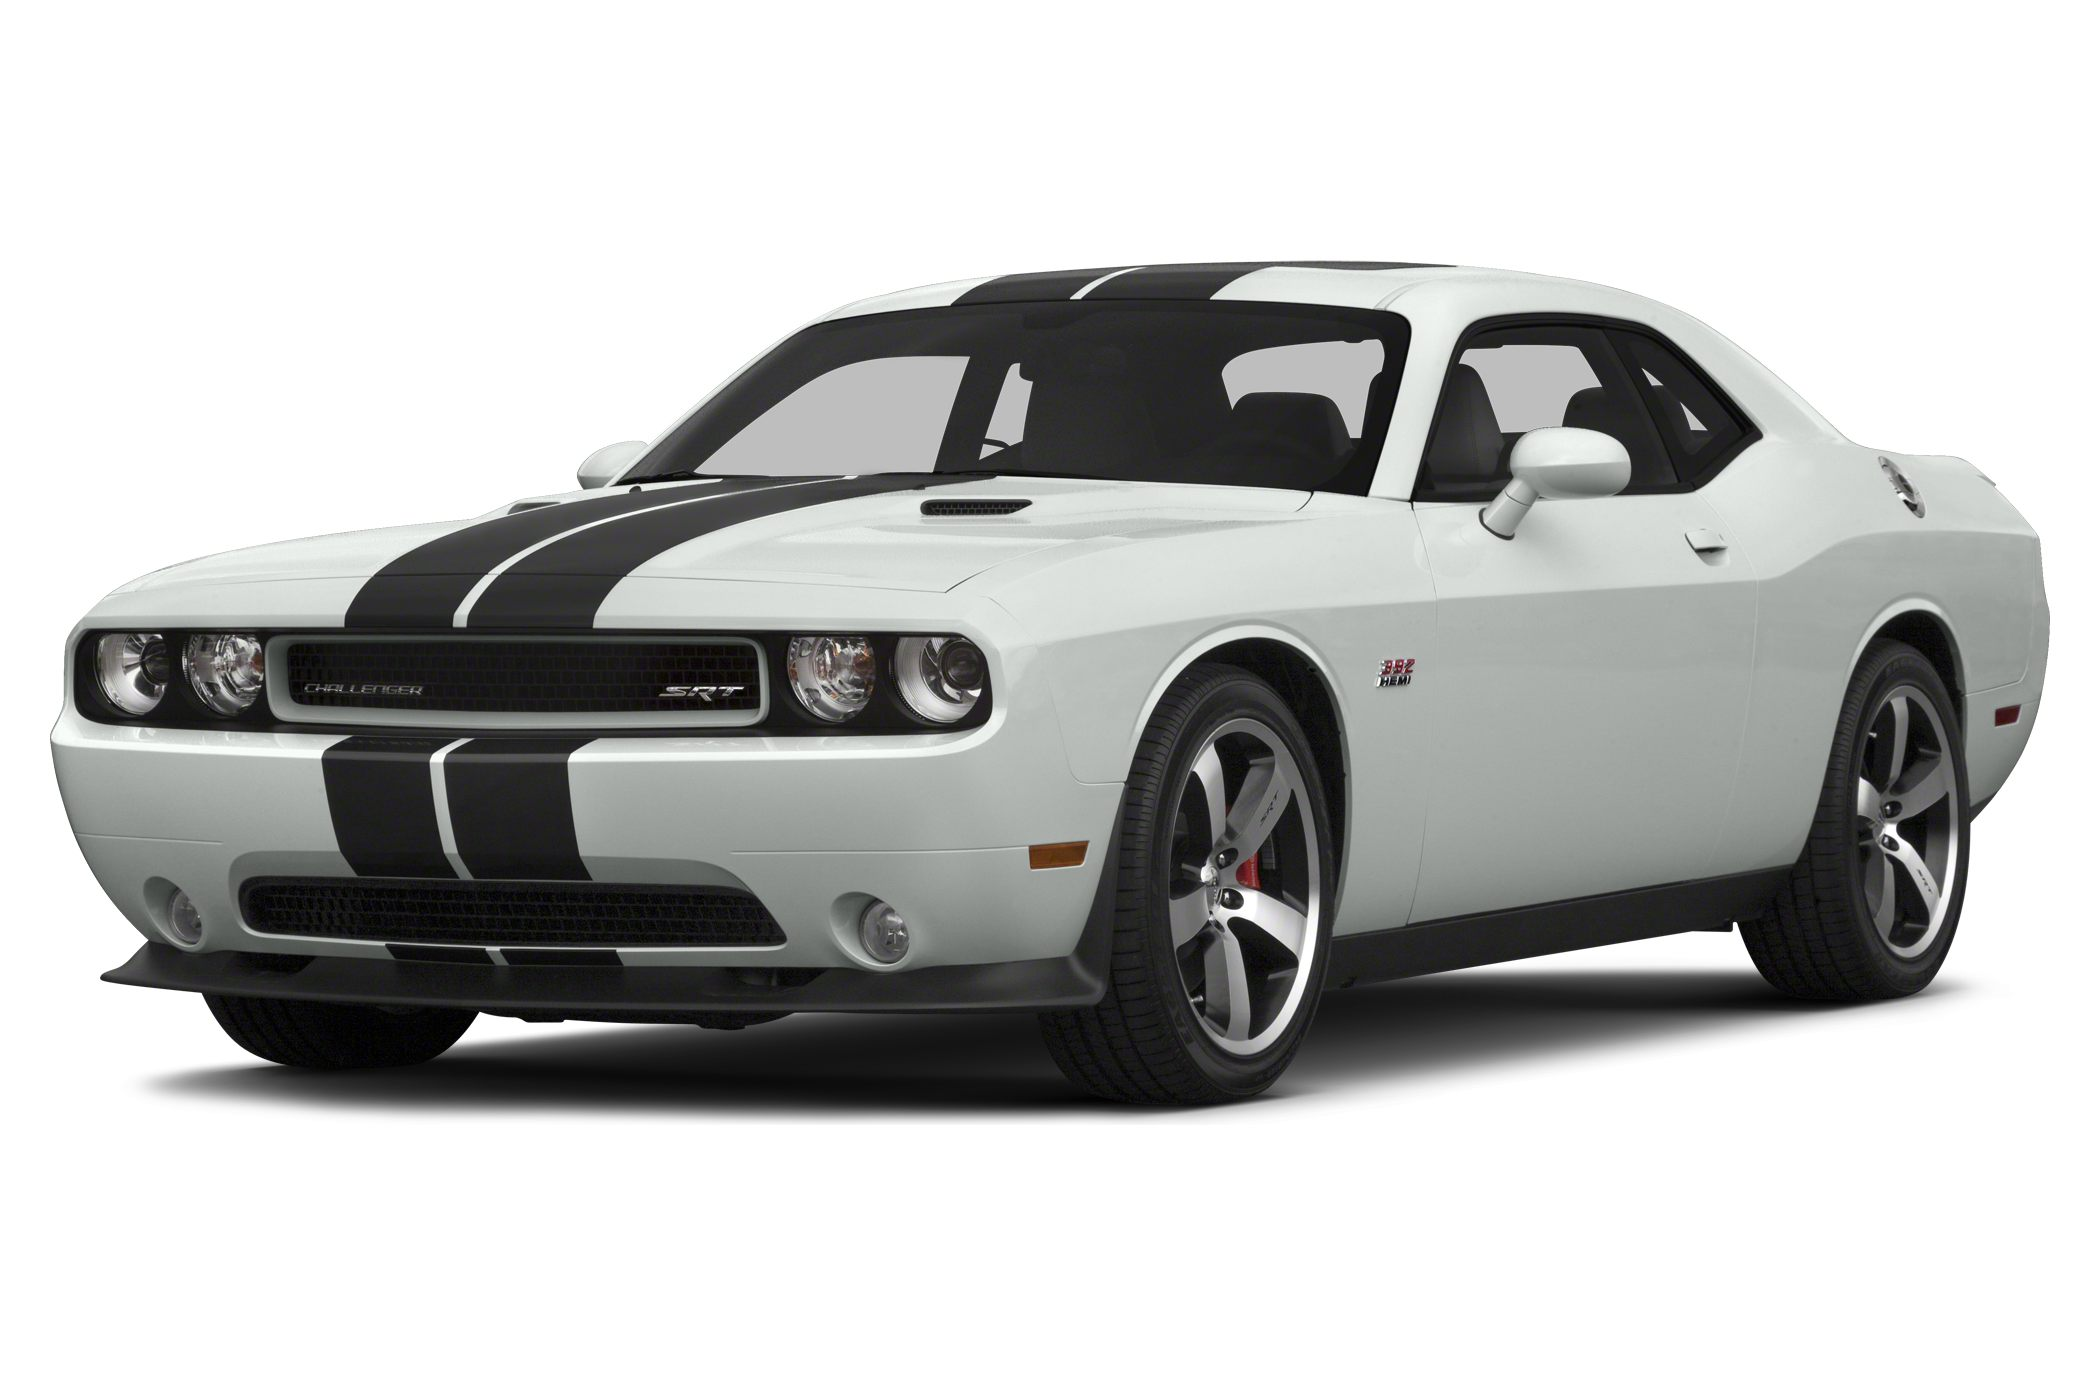 2014 Dodge Challenger SRT8 Core Coupe for sale in Augusta for $37,995 with 15,190 miles.